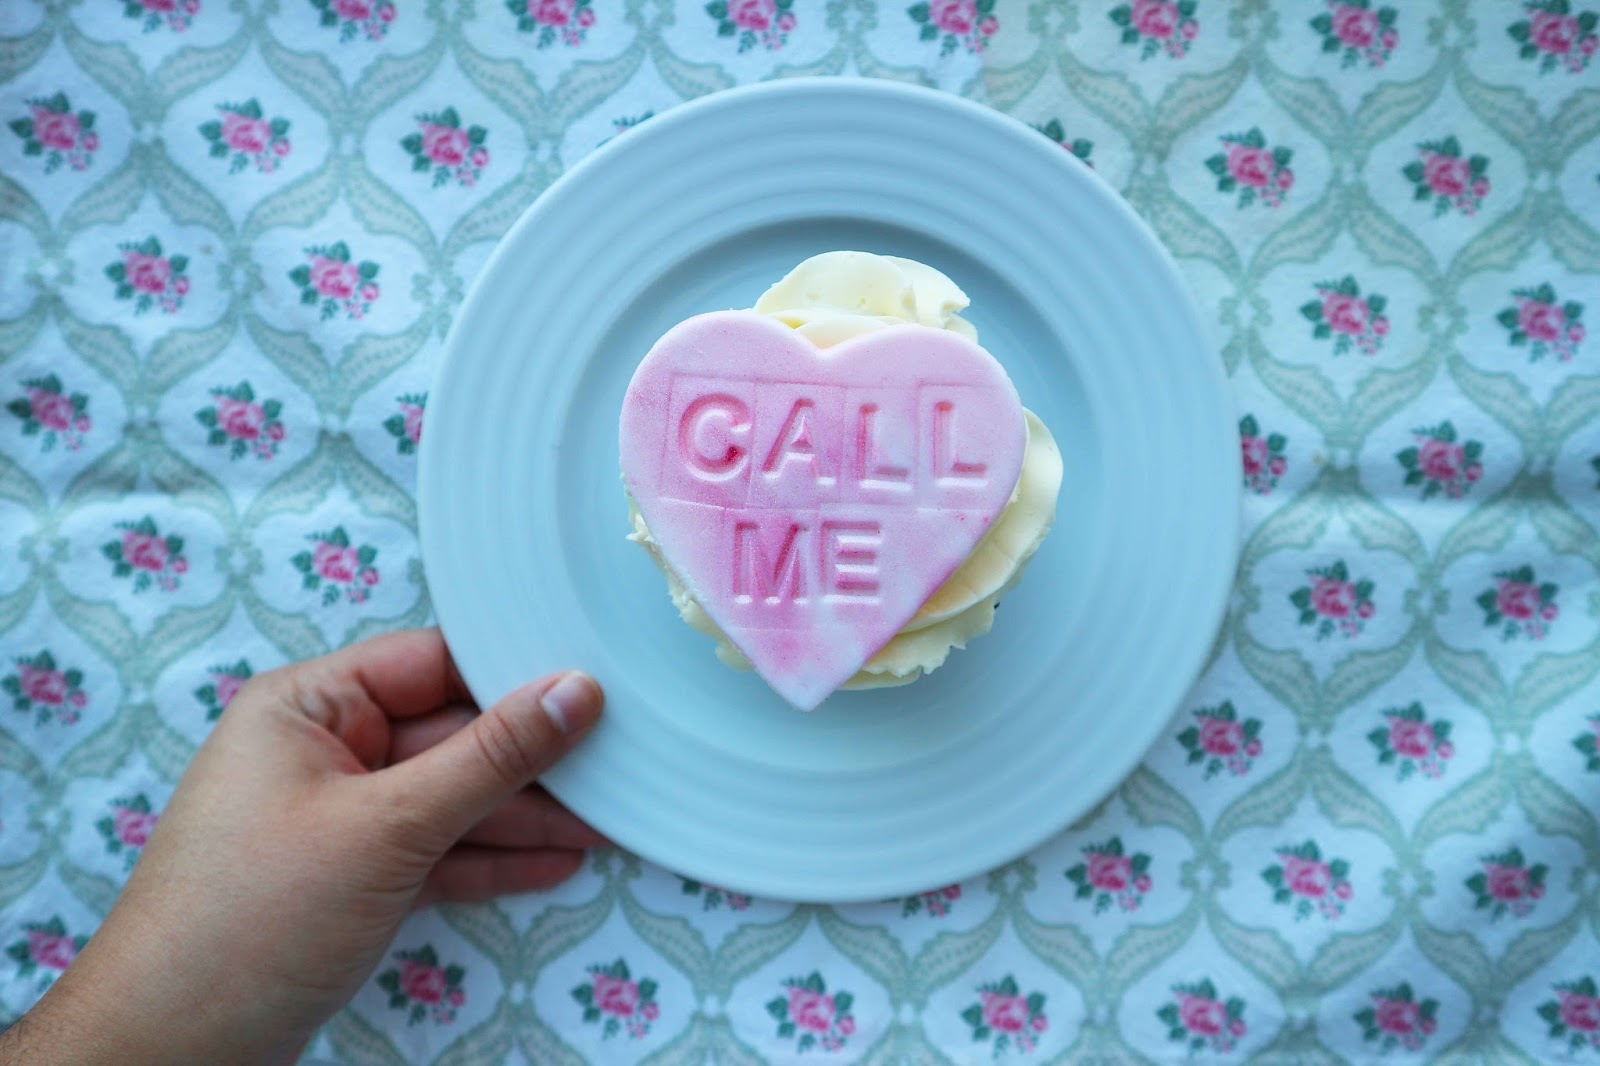 How to Have a Fabulous & Sweet Galentine's Day